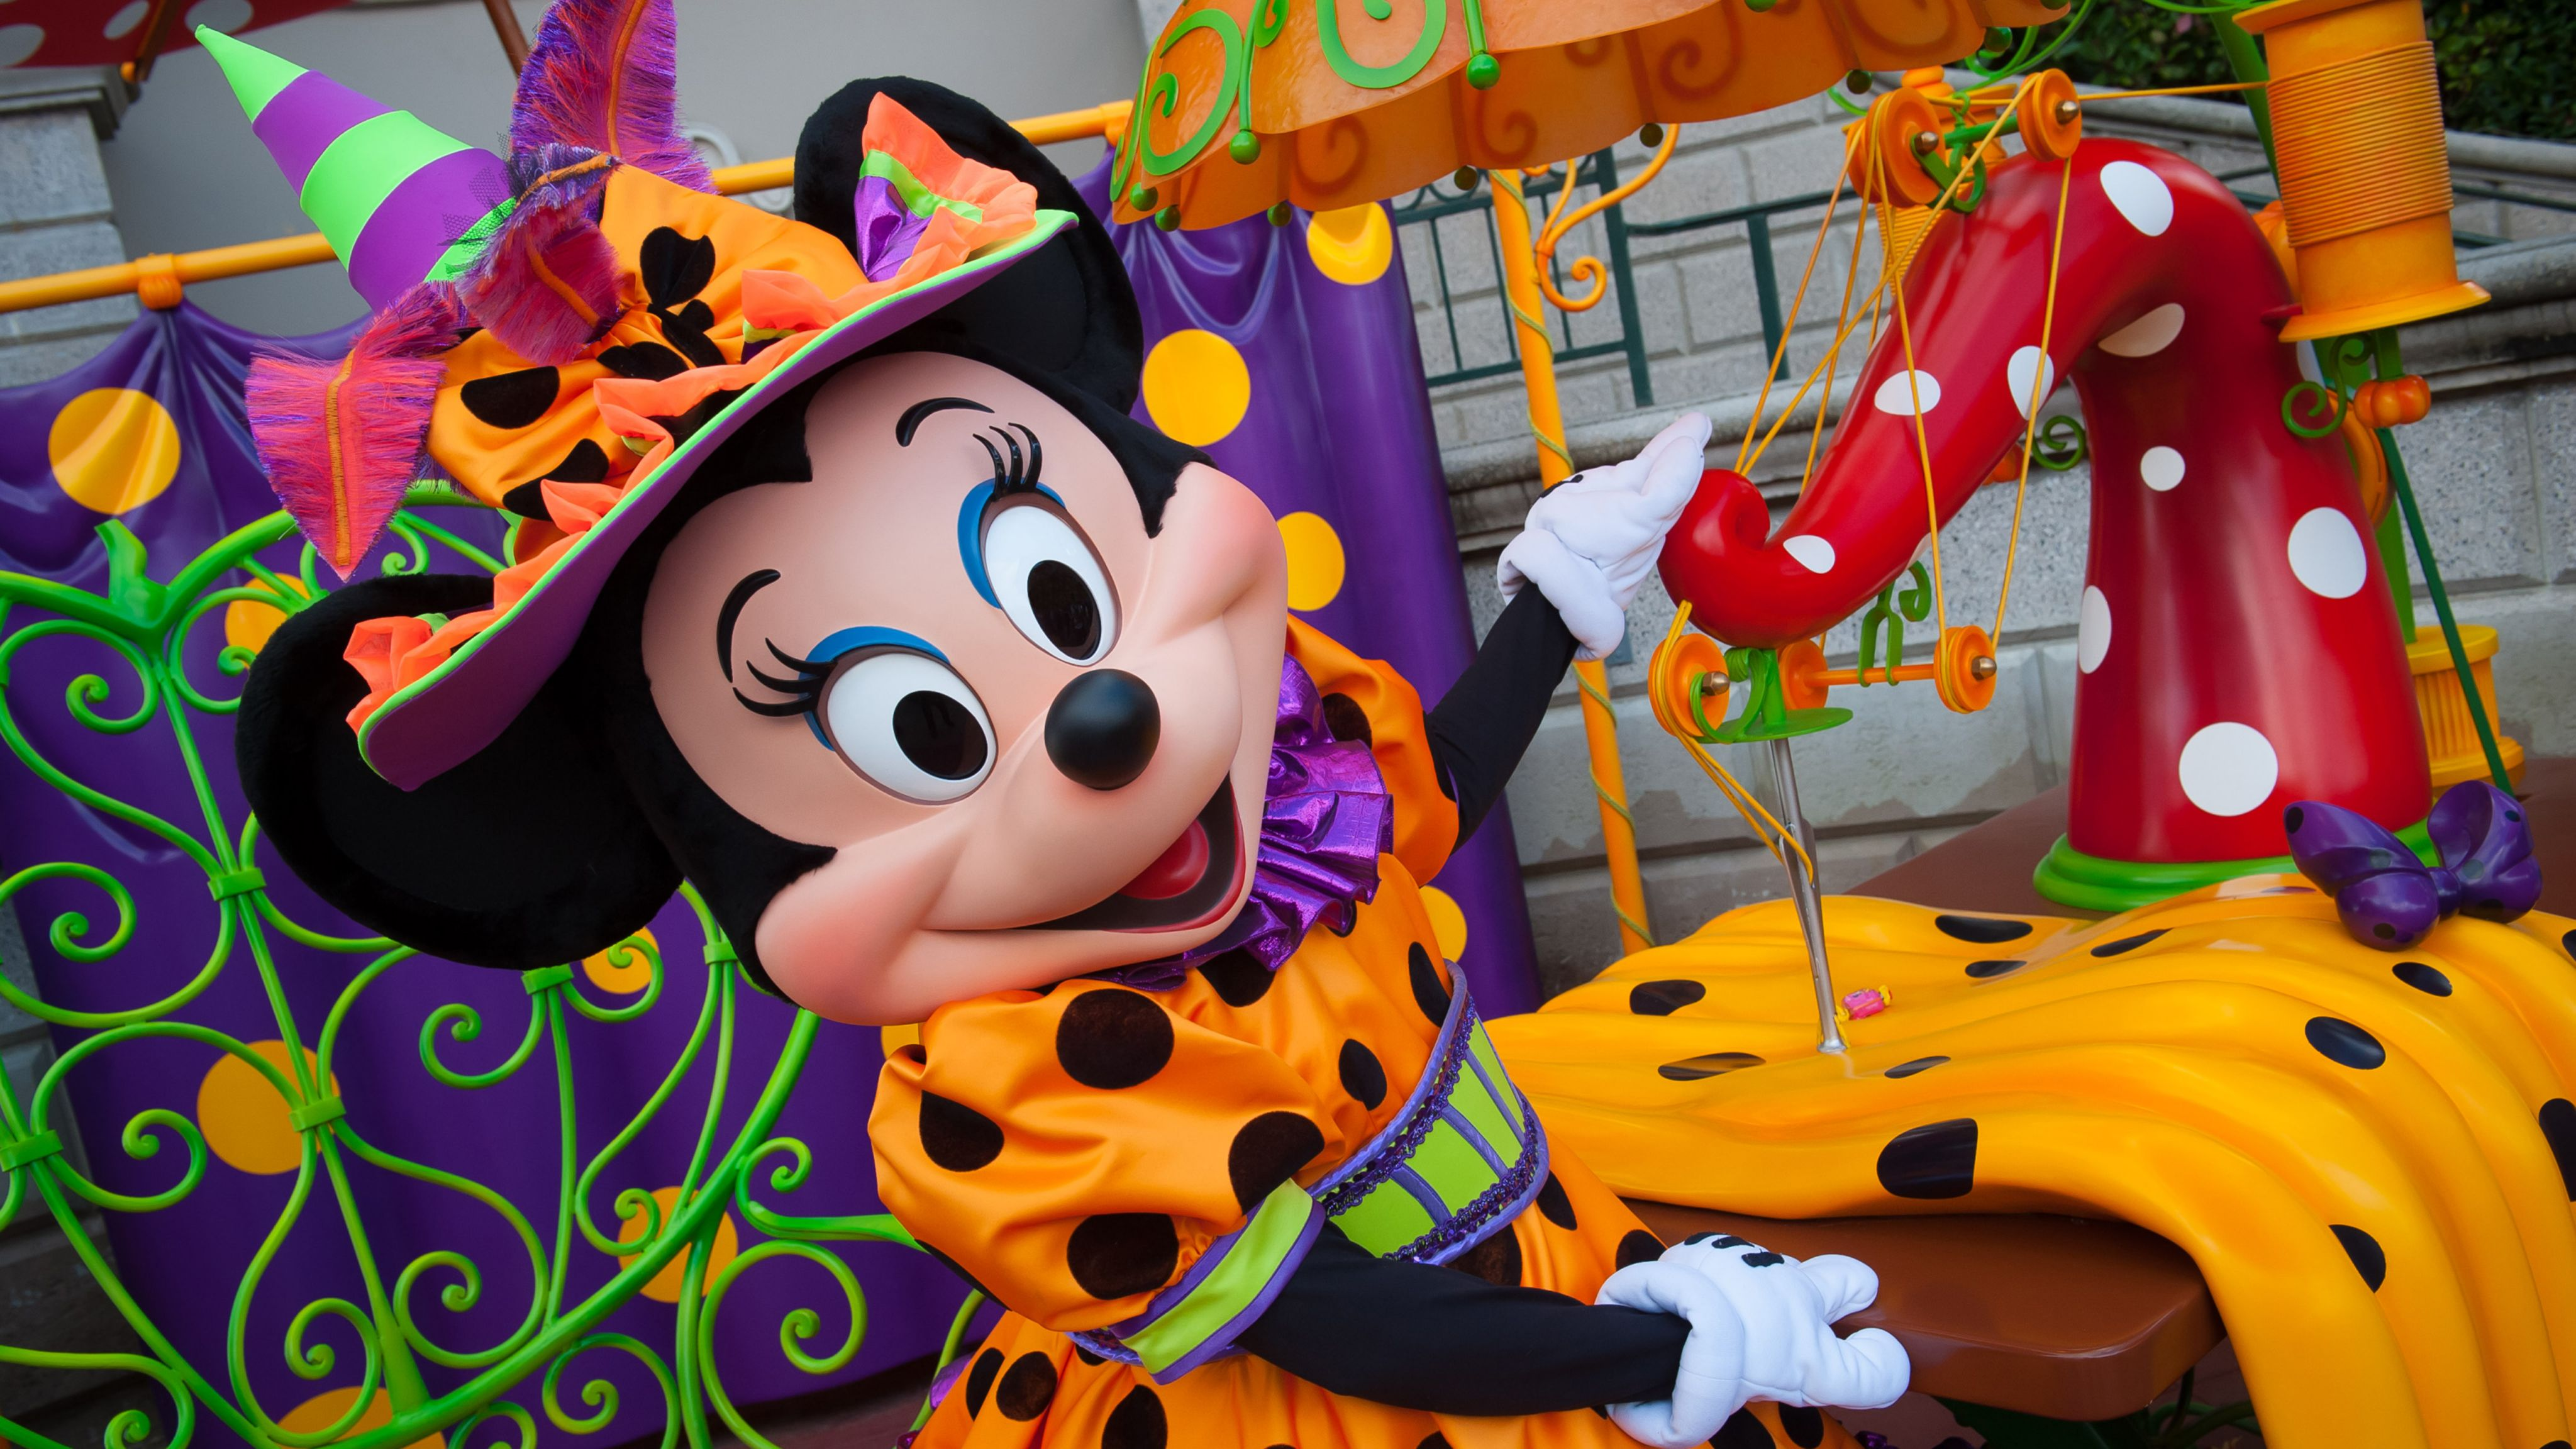 Minnie Mouse at Disneyland Paris for Halloween 2015 with ...